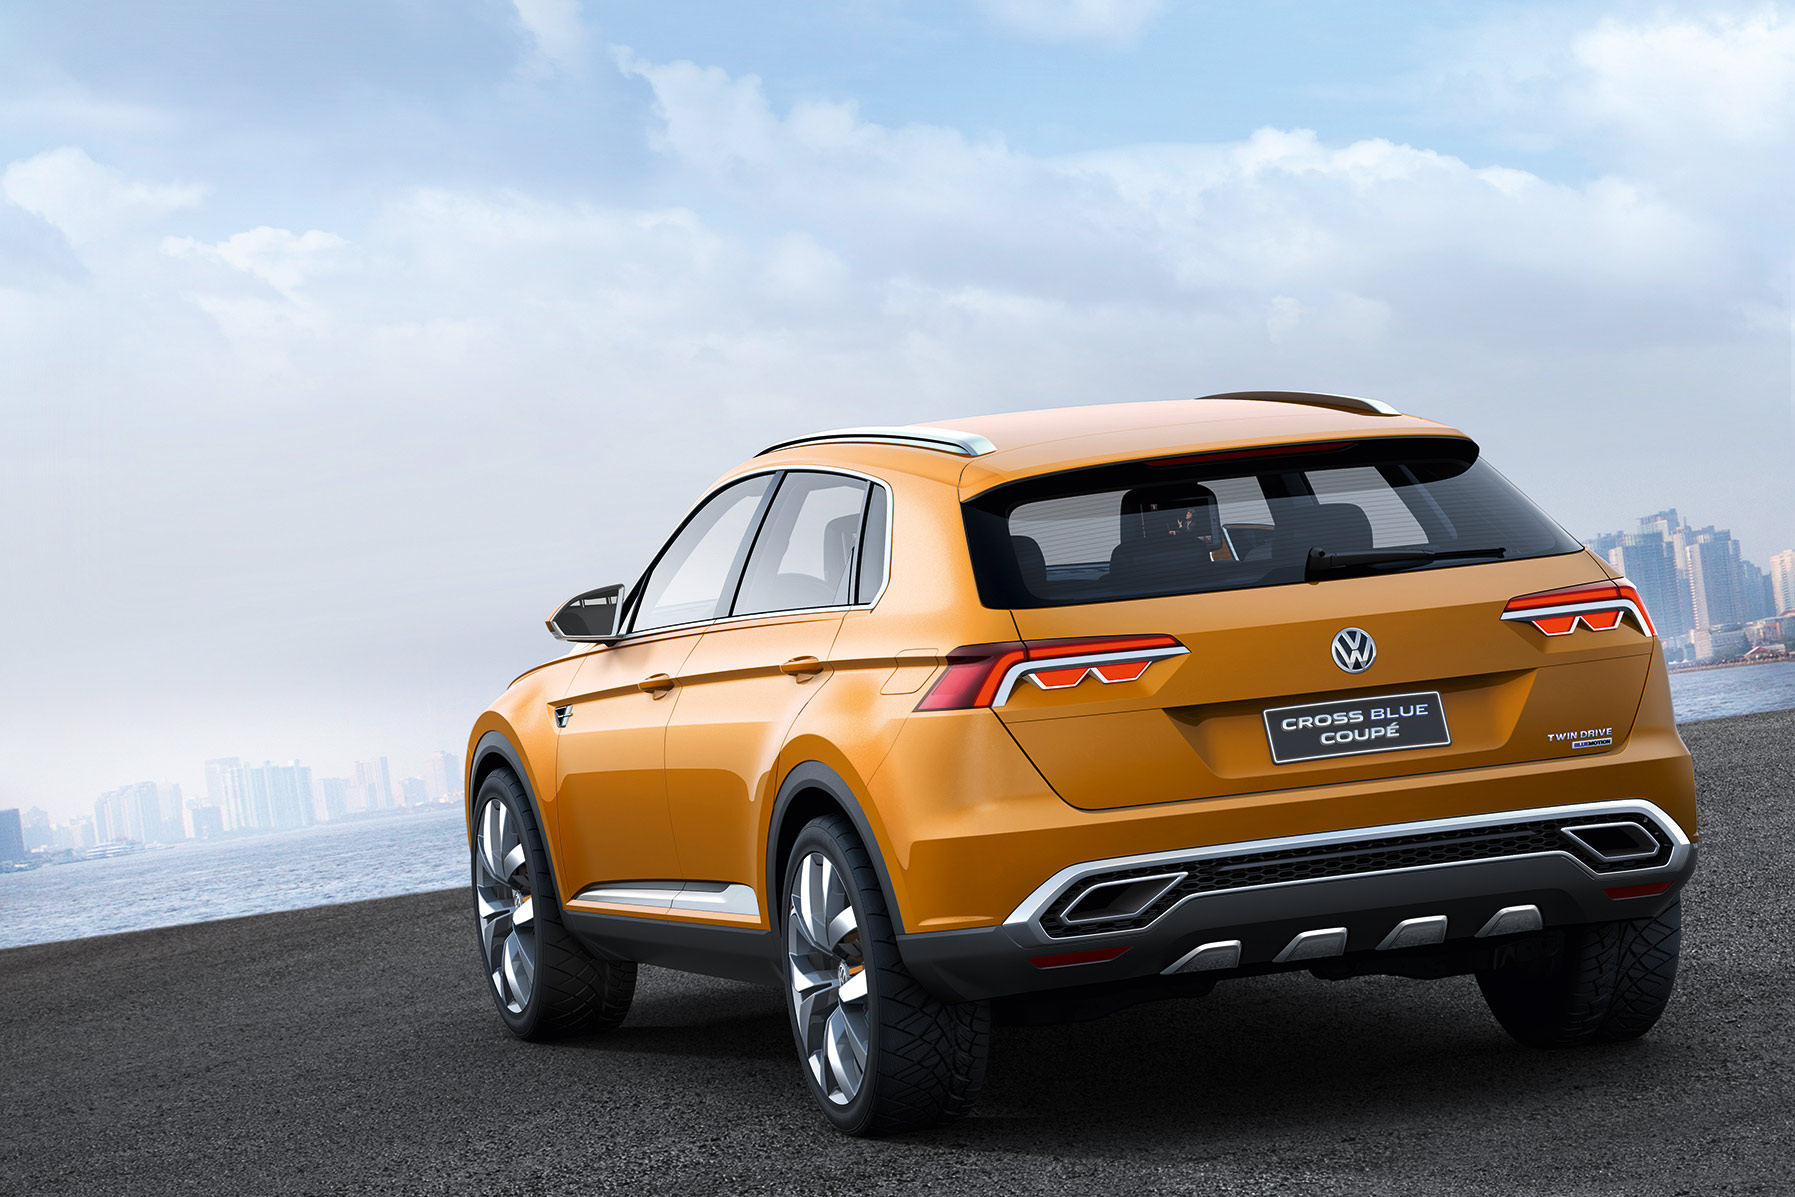 volkswagen-crossblue-coupe-concept-009